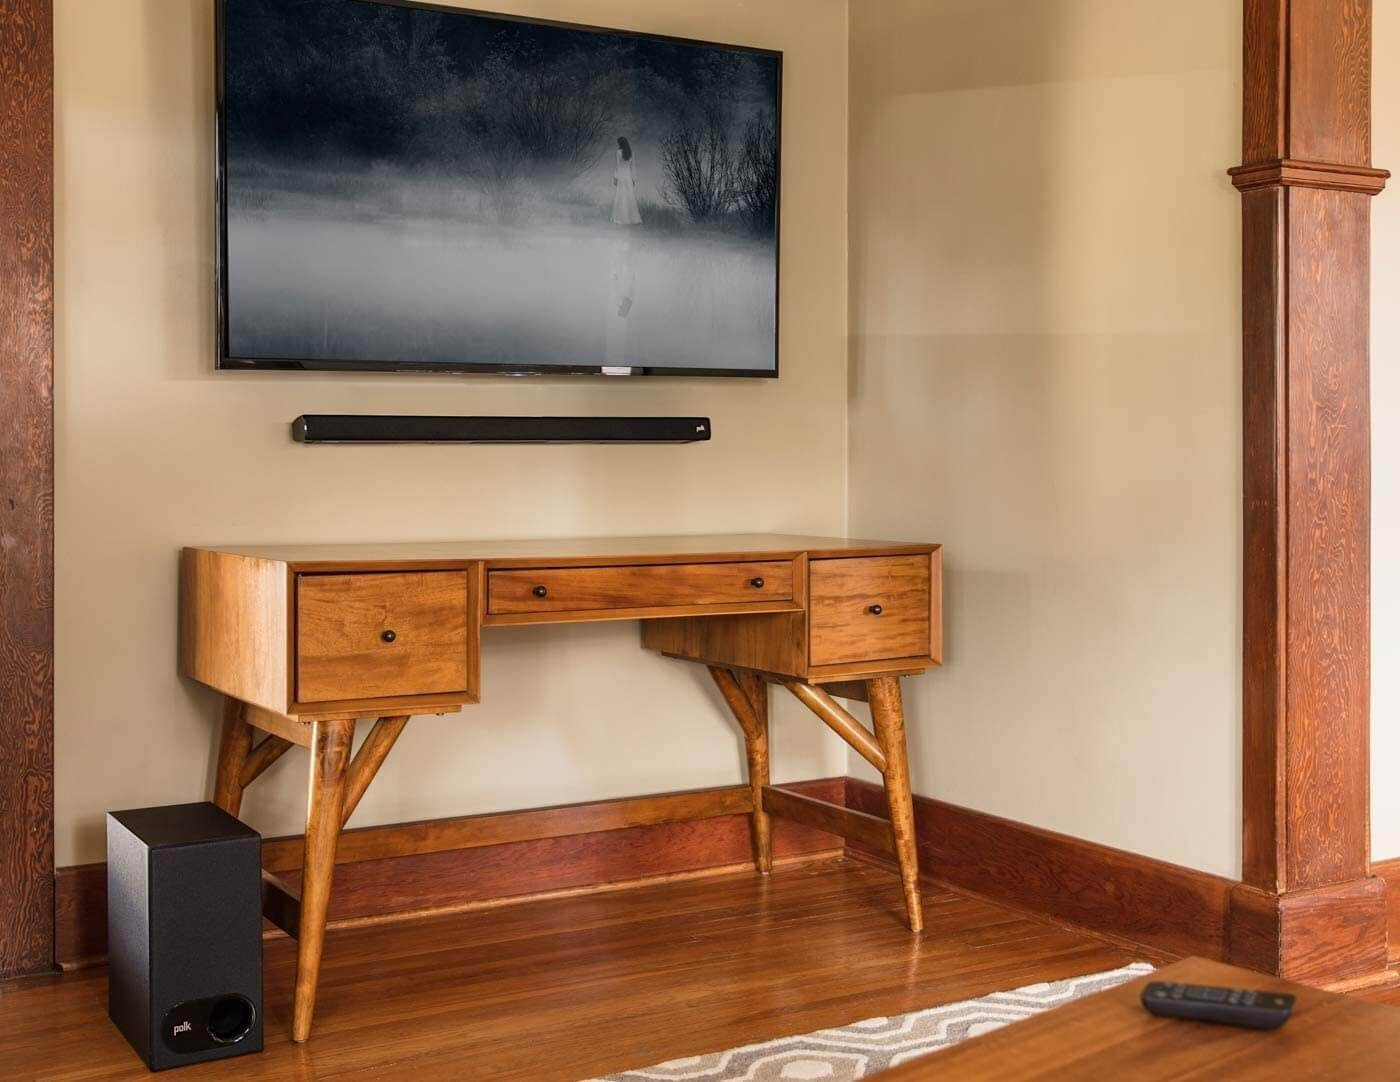 Polk Audio AM6214-A Signa S2 Ultra-Slim TV Sound Bar